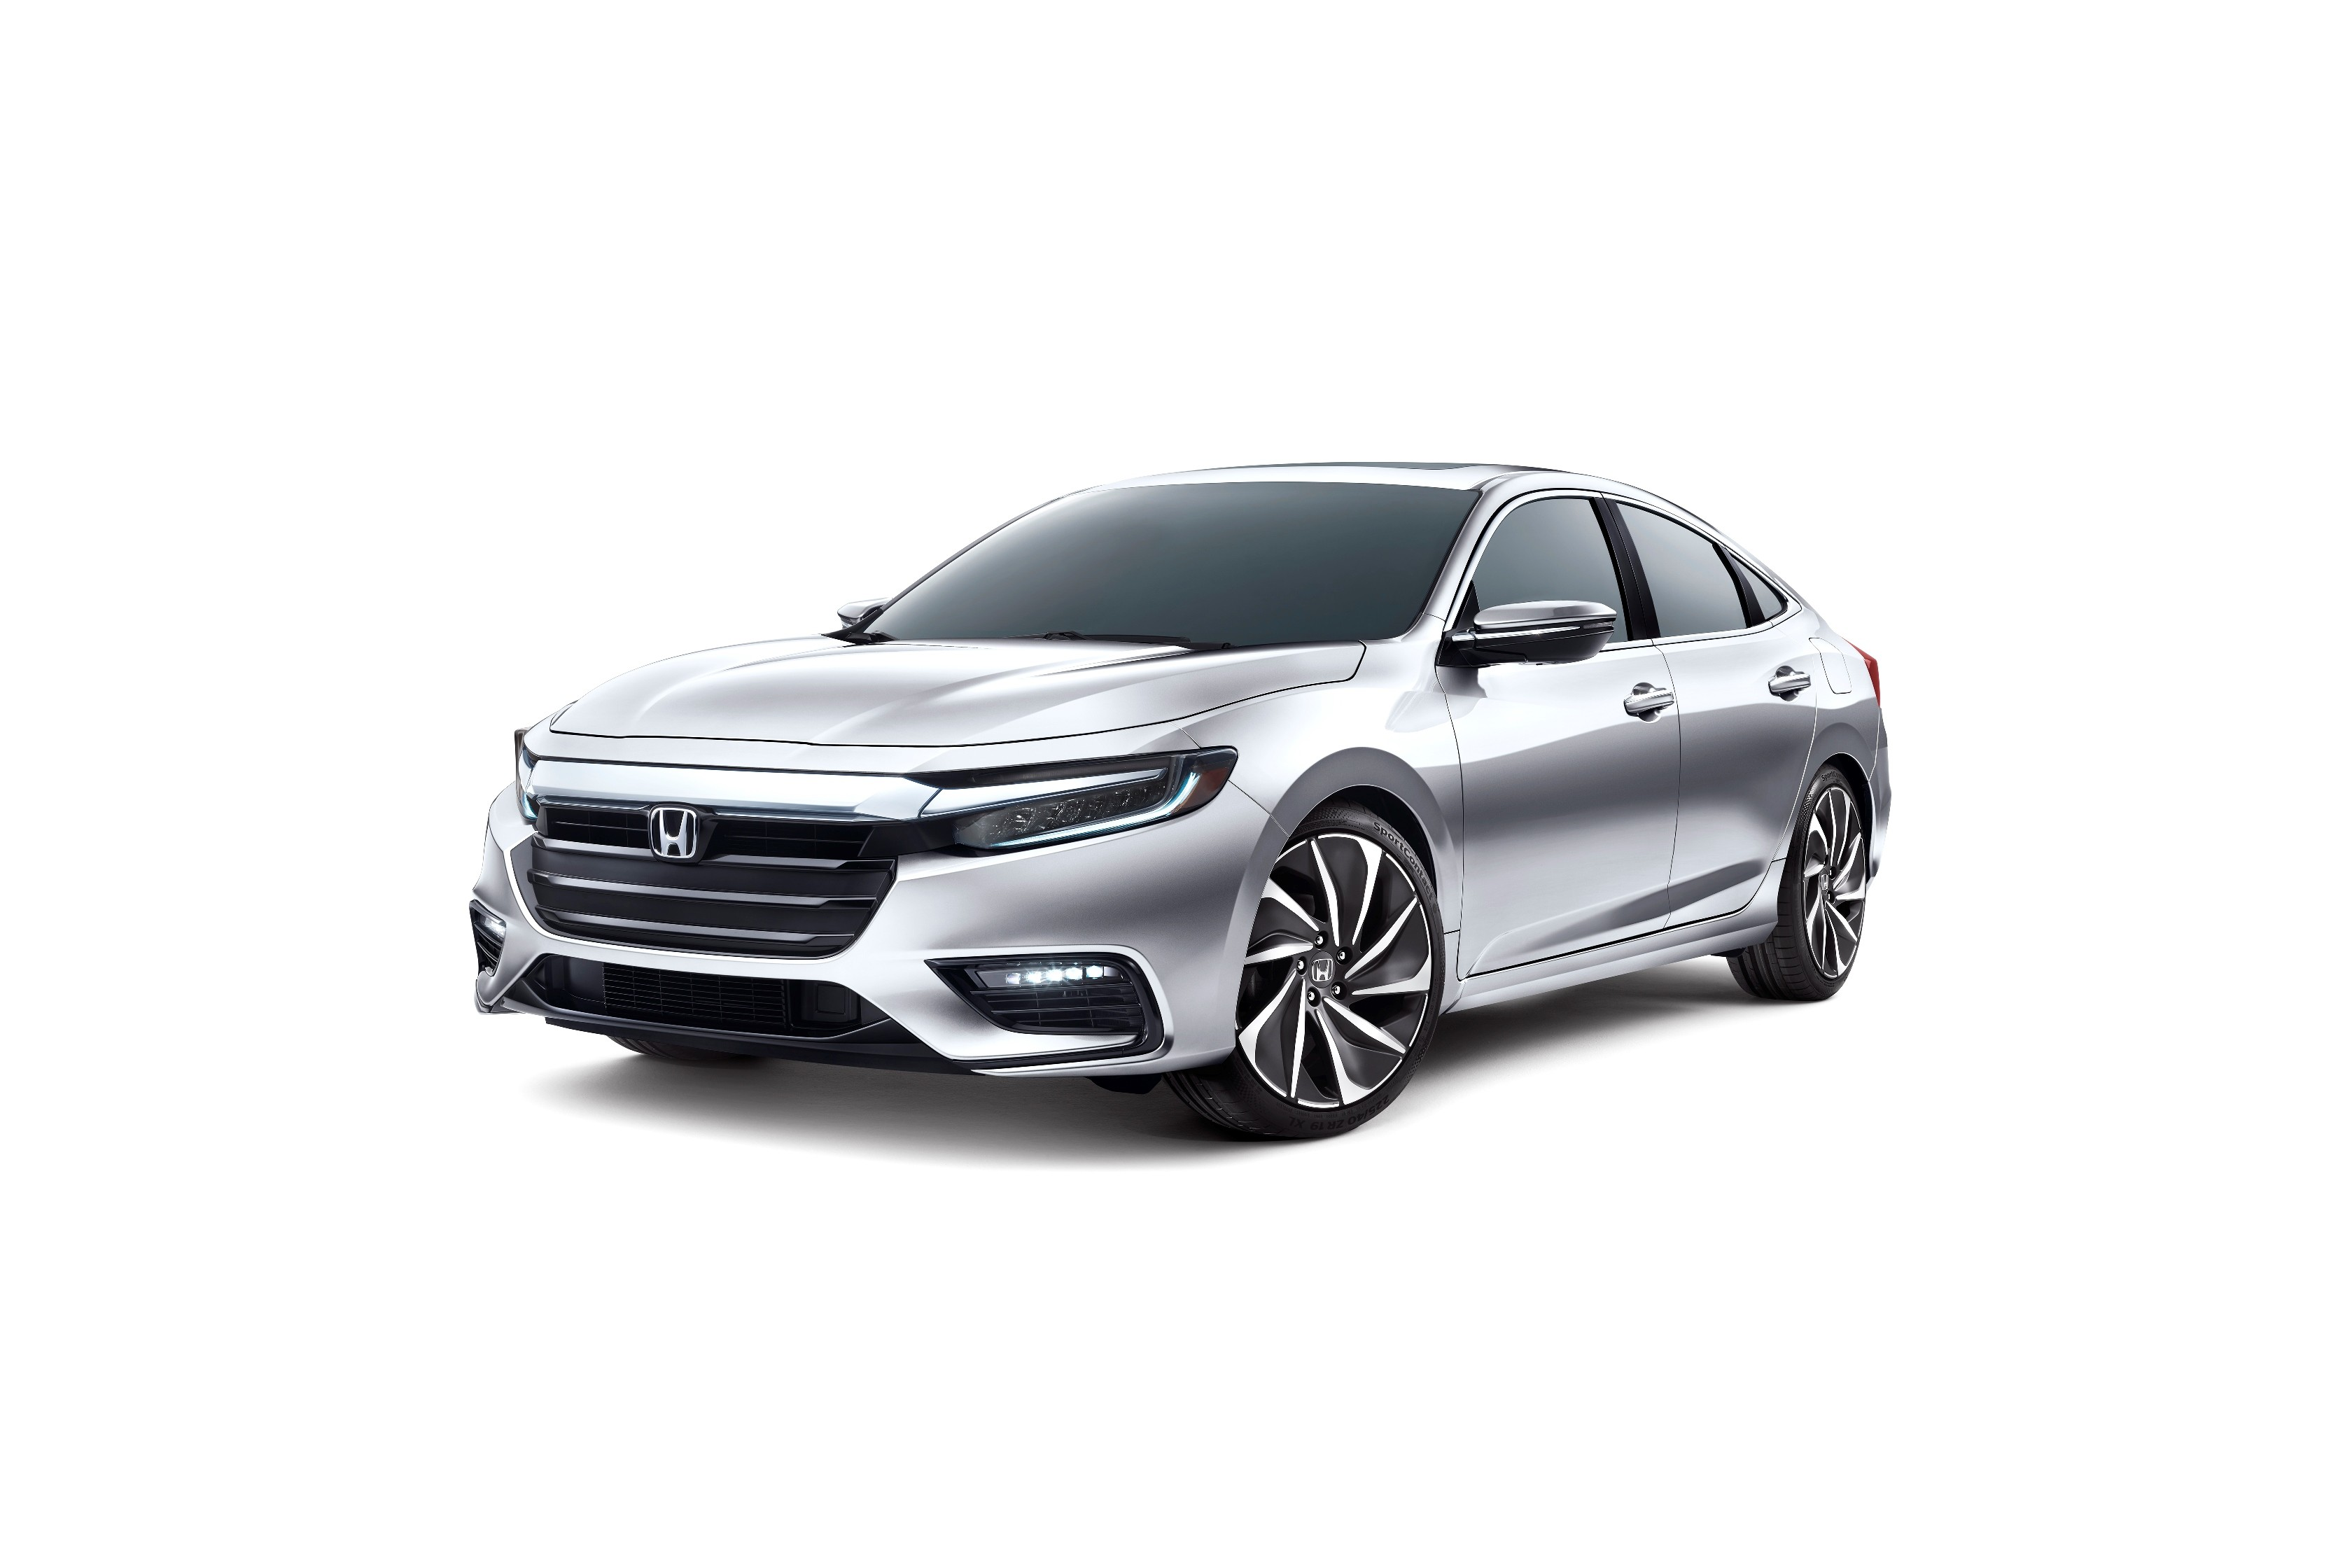 2019 Honda Insight Detailed, Gets More Than 50 MPG Combined - autoevolution